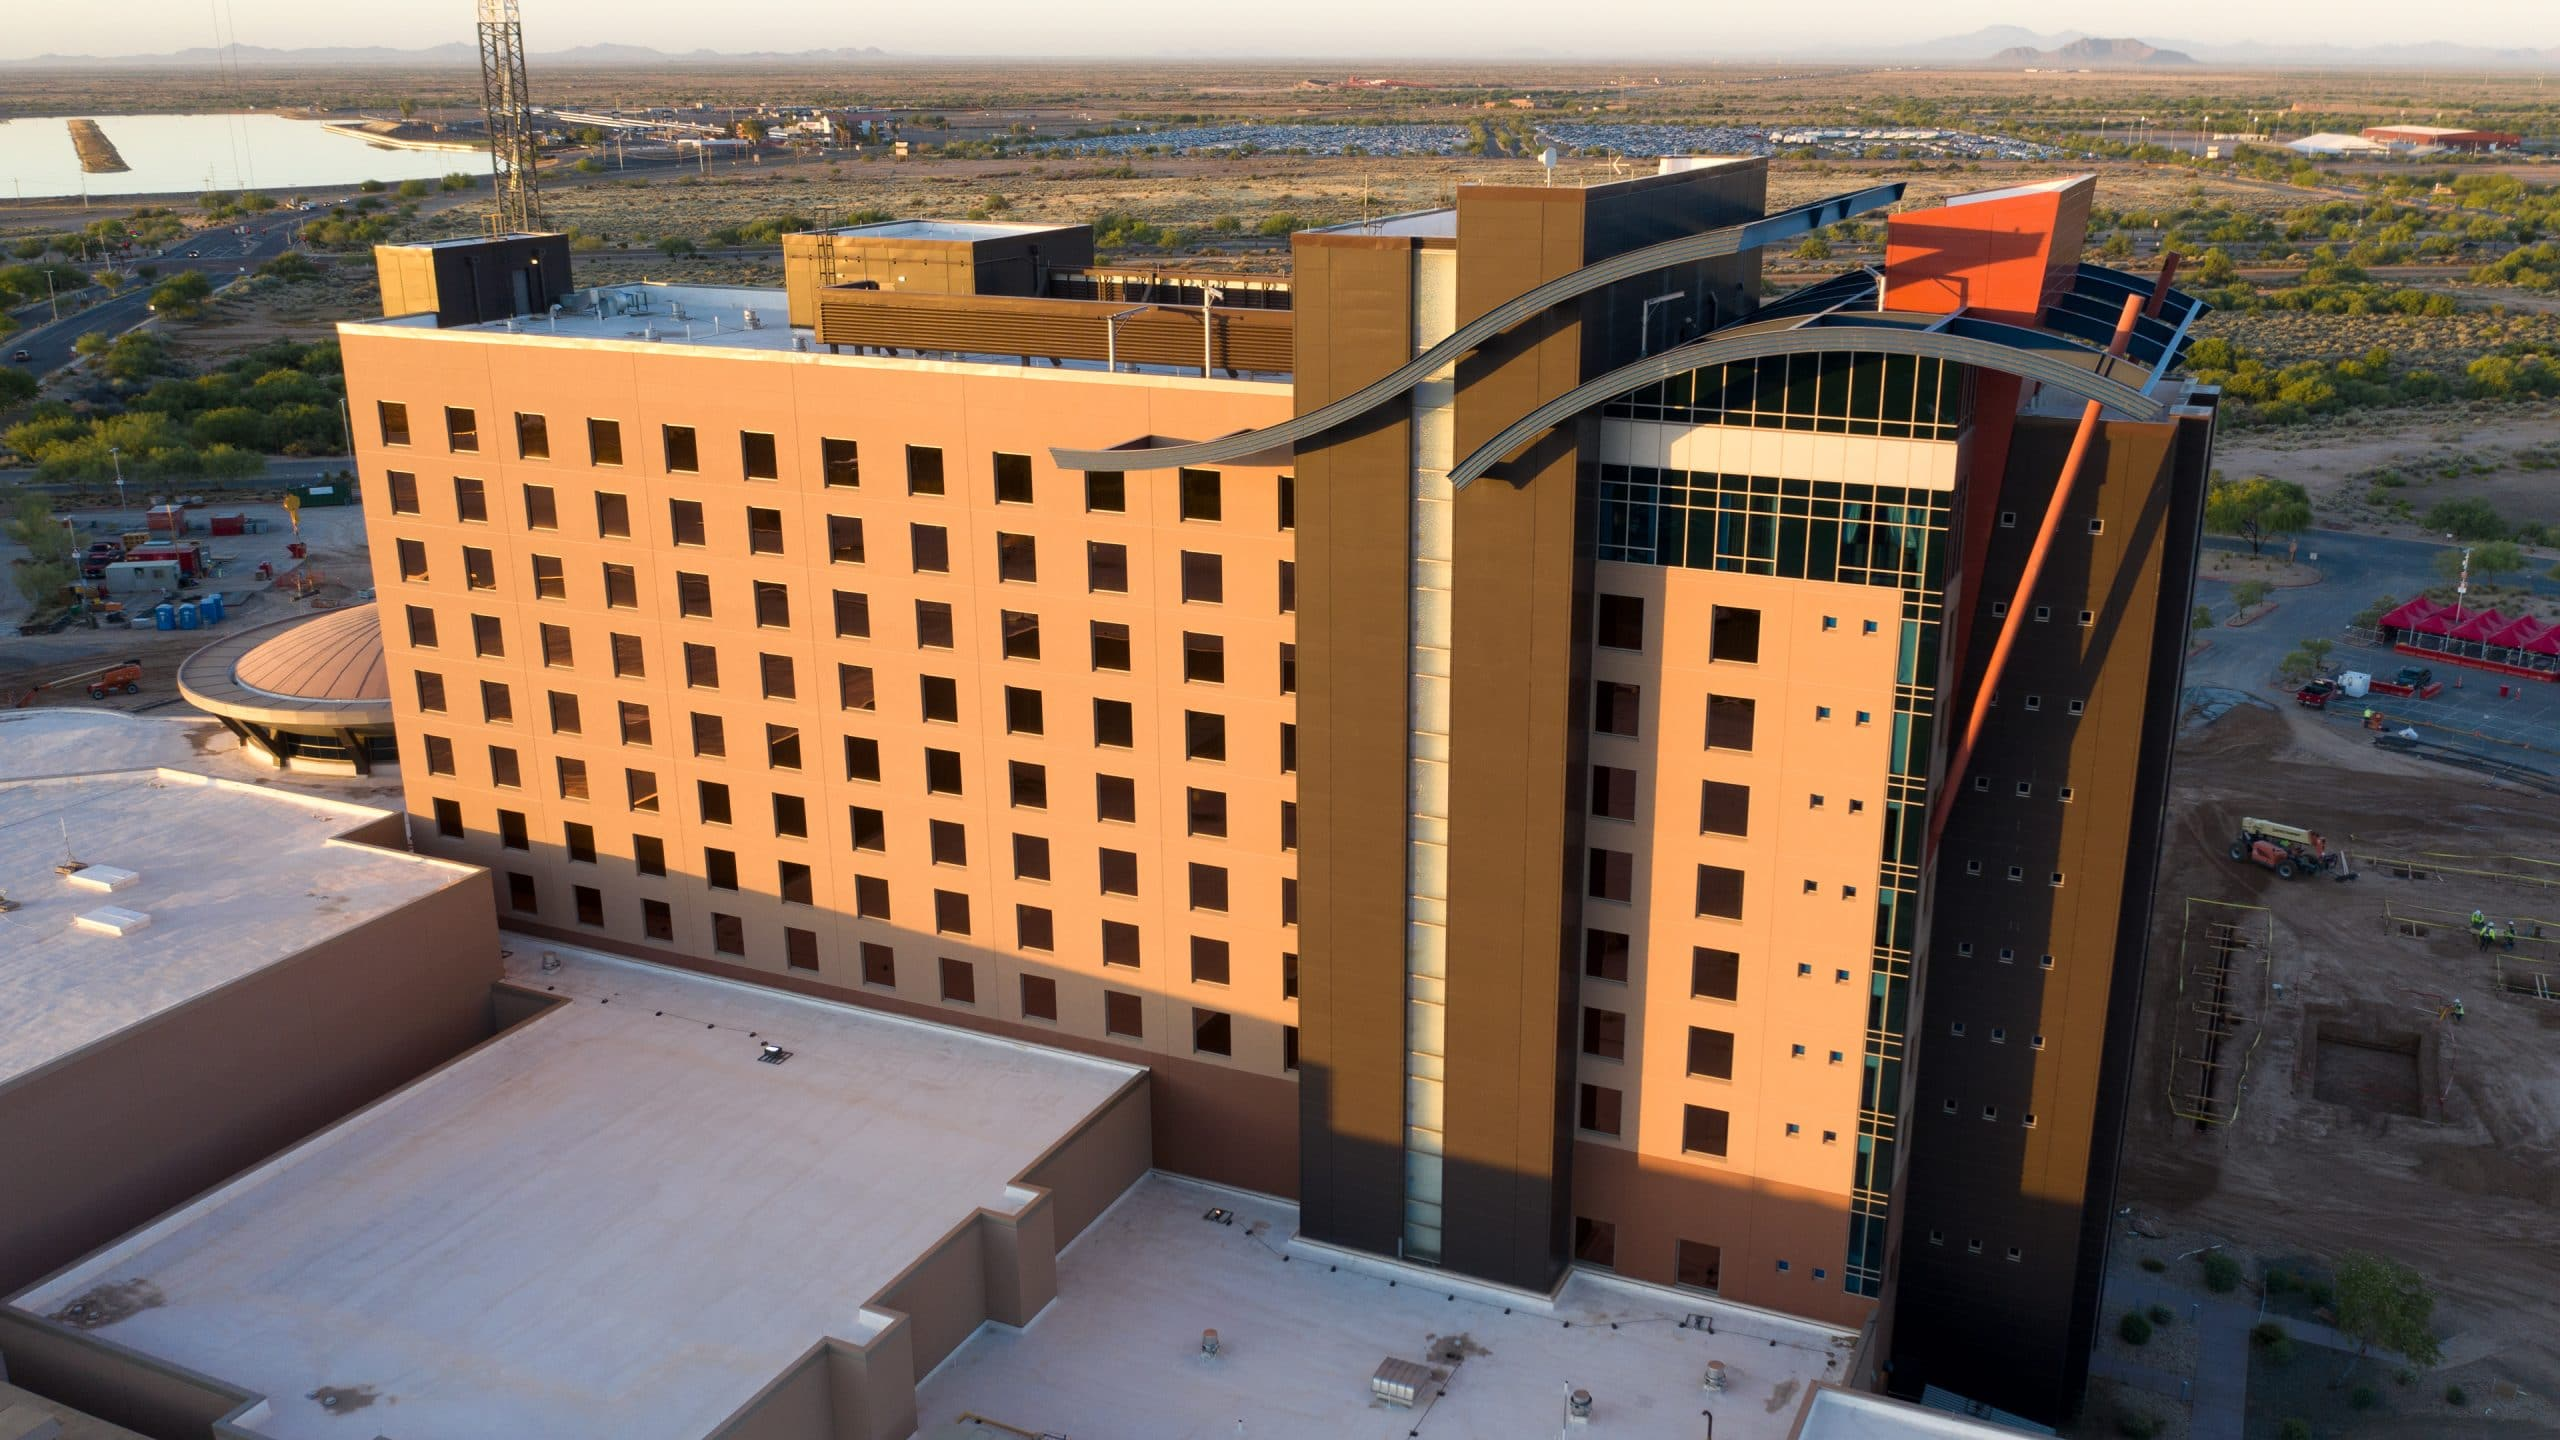 Gila River Hotels Casinos Wild Horse Pass Tenant Improvement scaled